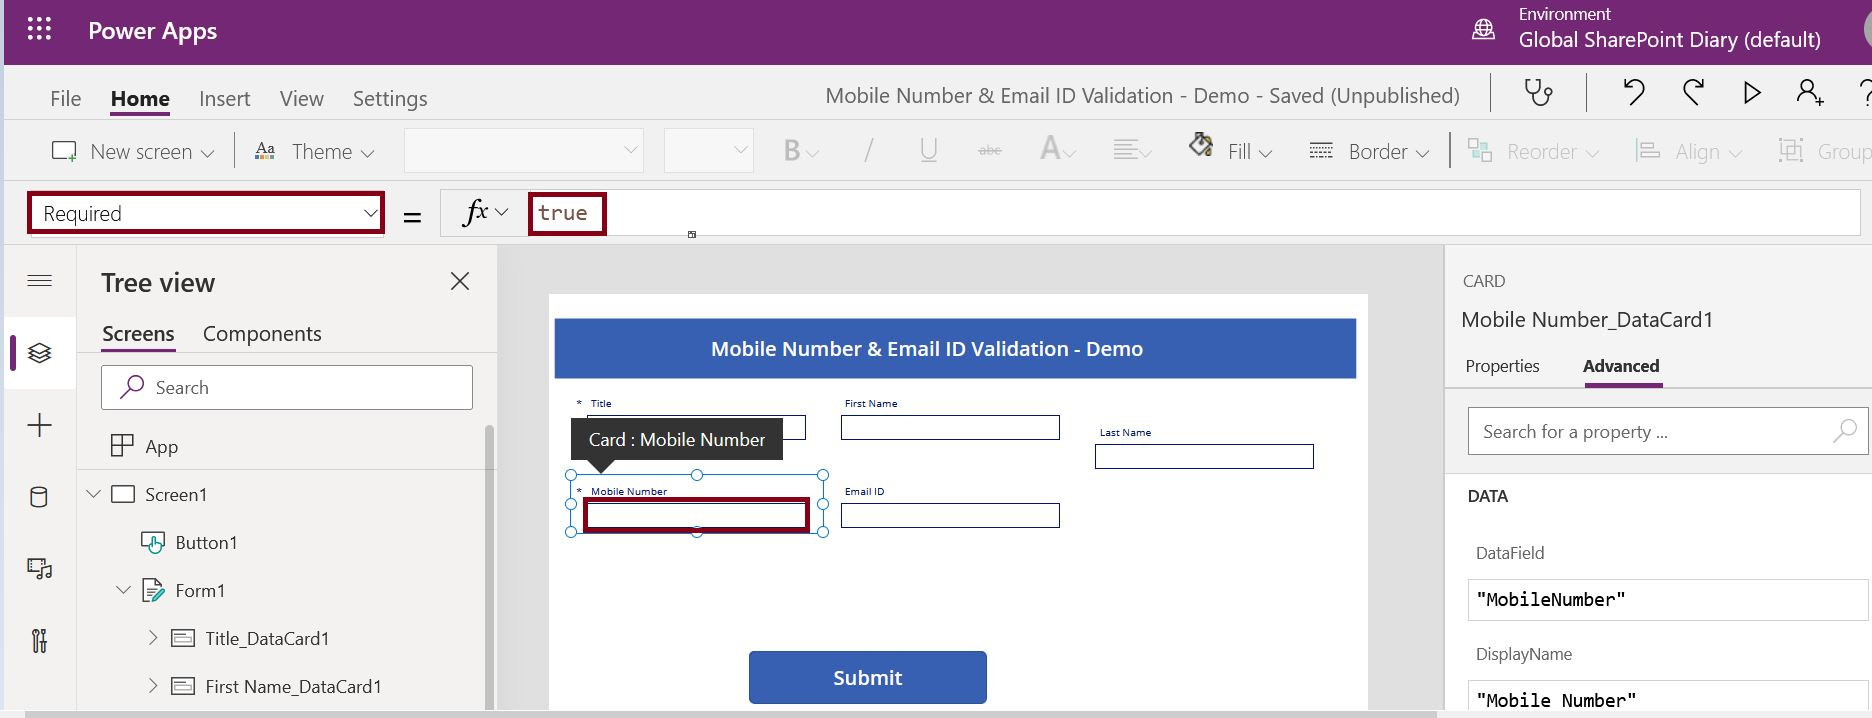 How to make PowerApps field property as required?